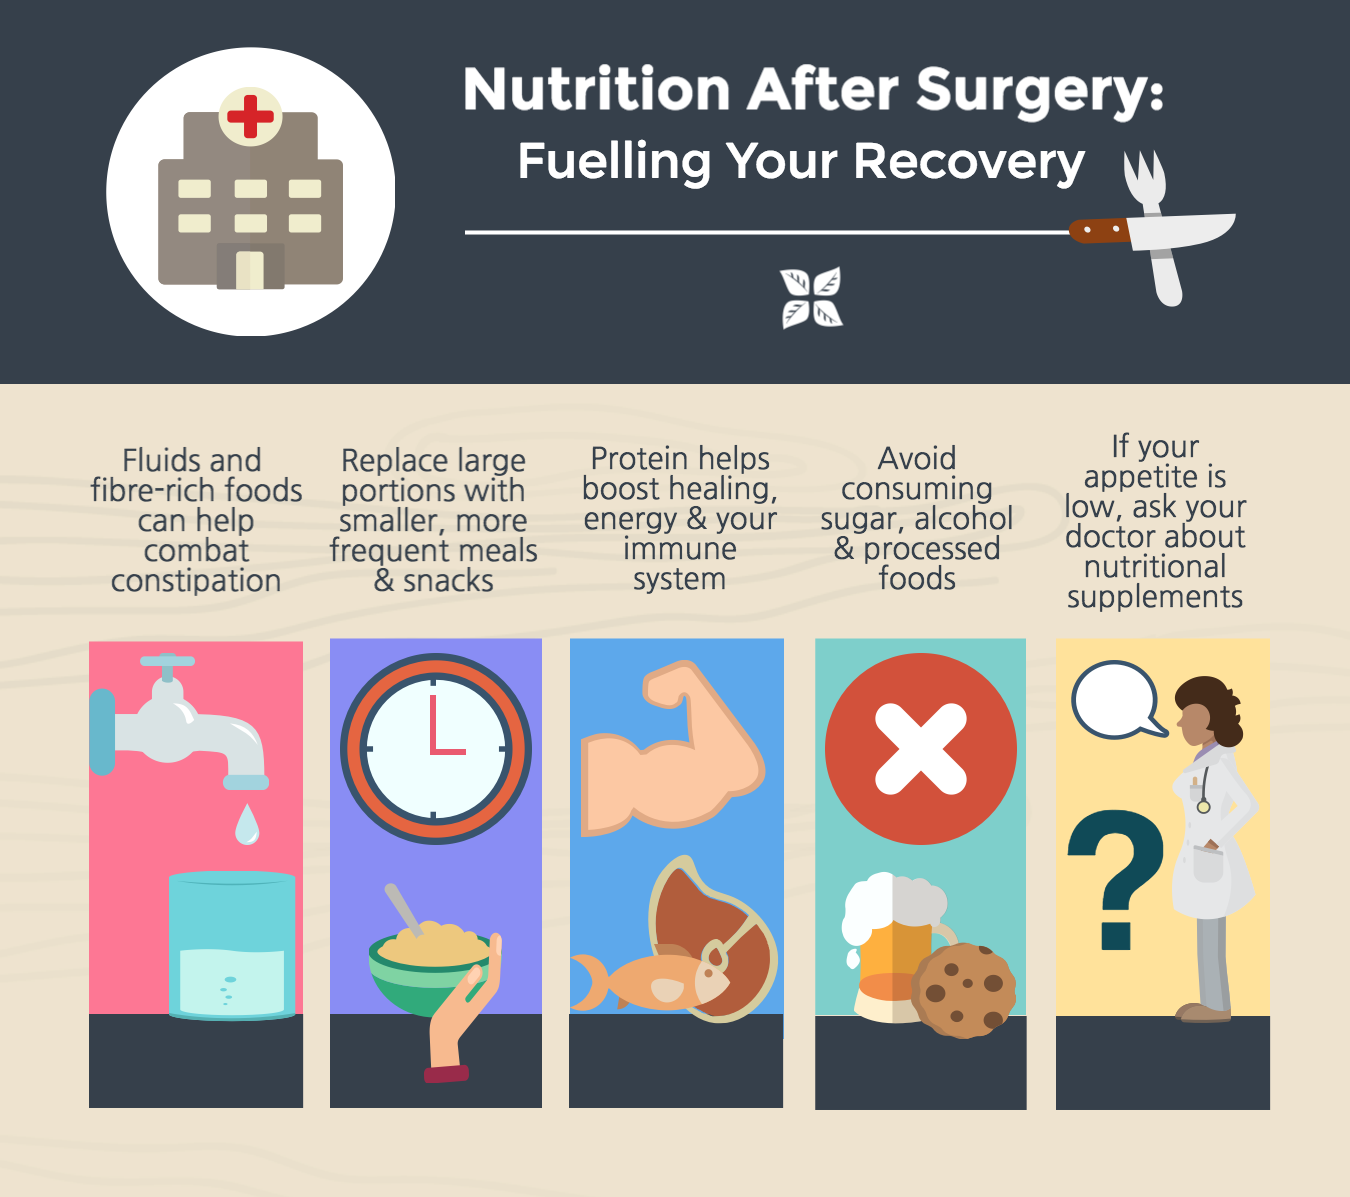 Nutrition after surgery infographic